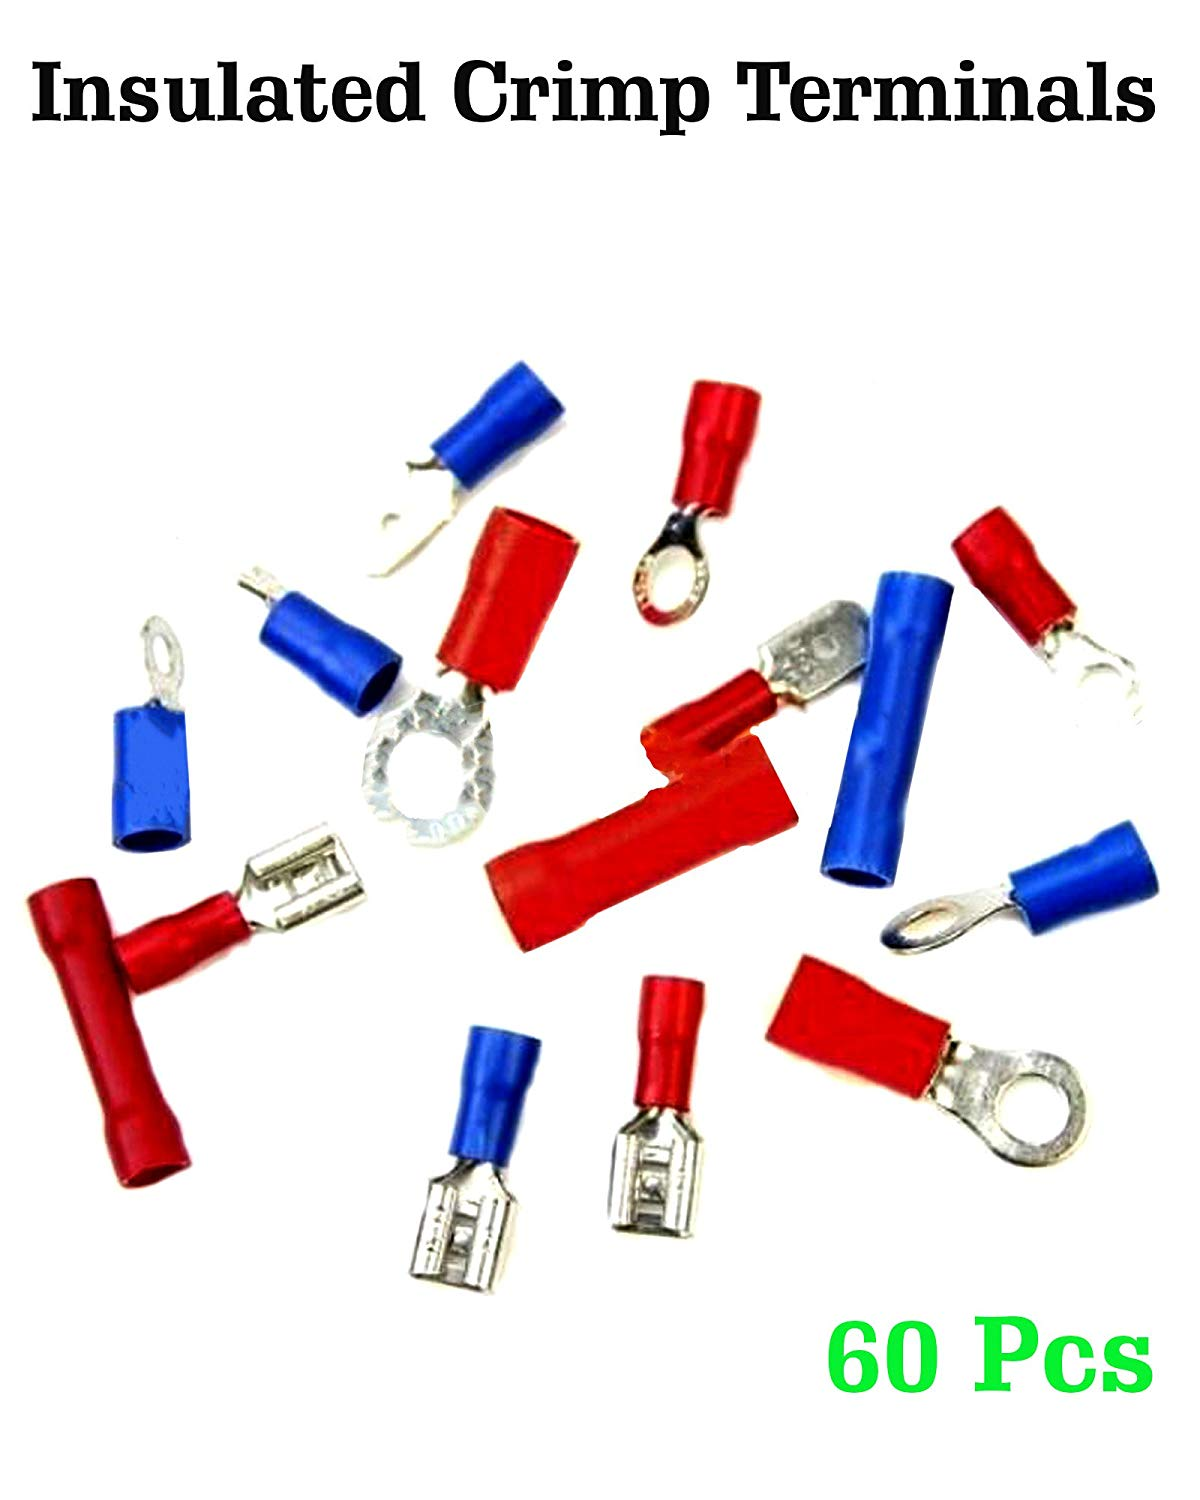 Cheap Hanroot Ring Wire Terminal Find Car Wiring Harness Crimper Get Quotations 60 Pcs Crimp Kit Insulated Connector Terminals Spade Butt Electrical Connectors